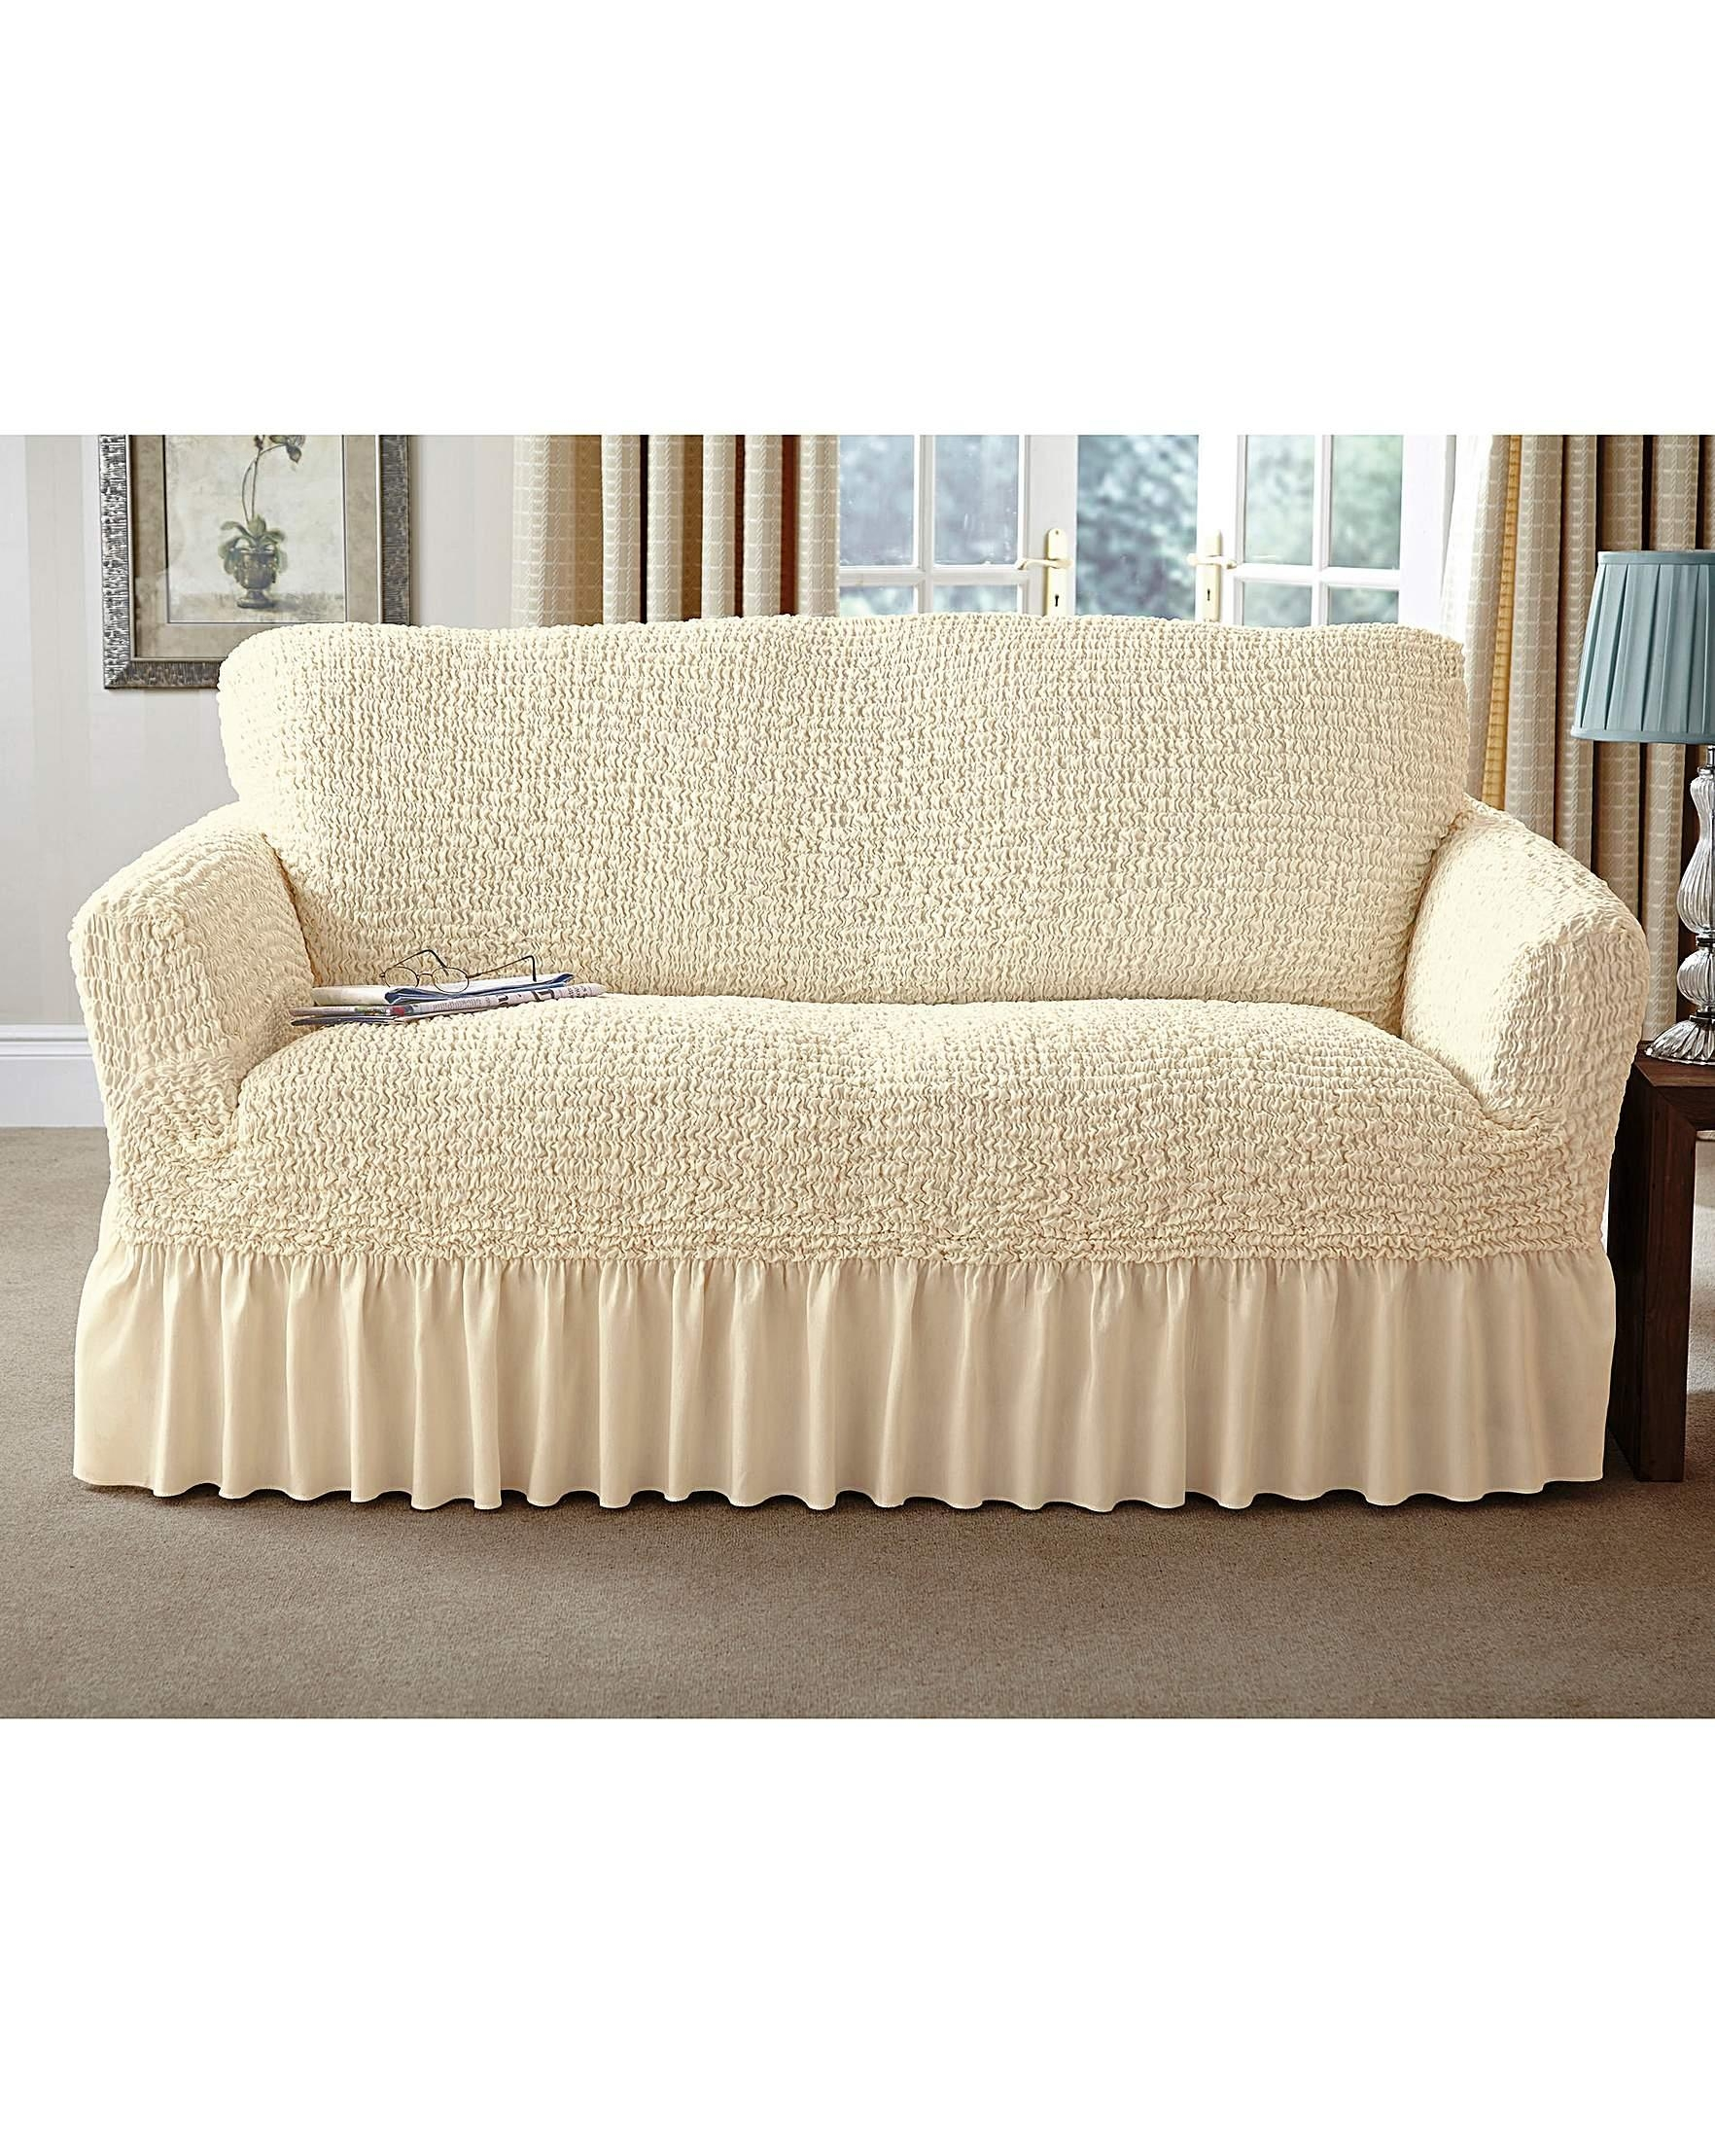 Settee Covers | Loose Sofa Covers | Replacement Sofa Covers | Arm With Regard To Sofa Settee Covers (View 5 of 22)